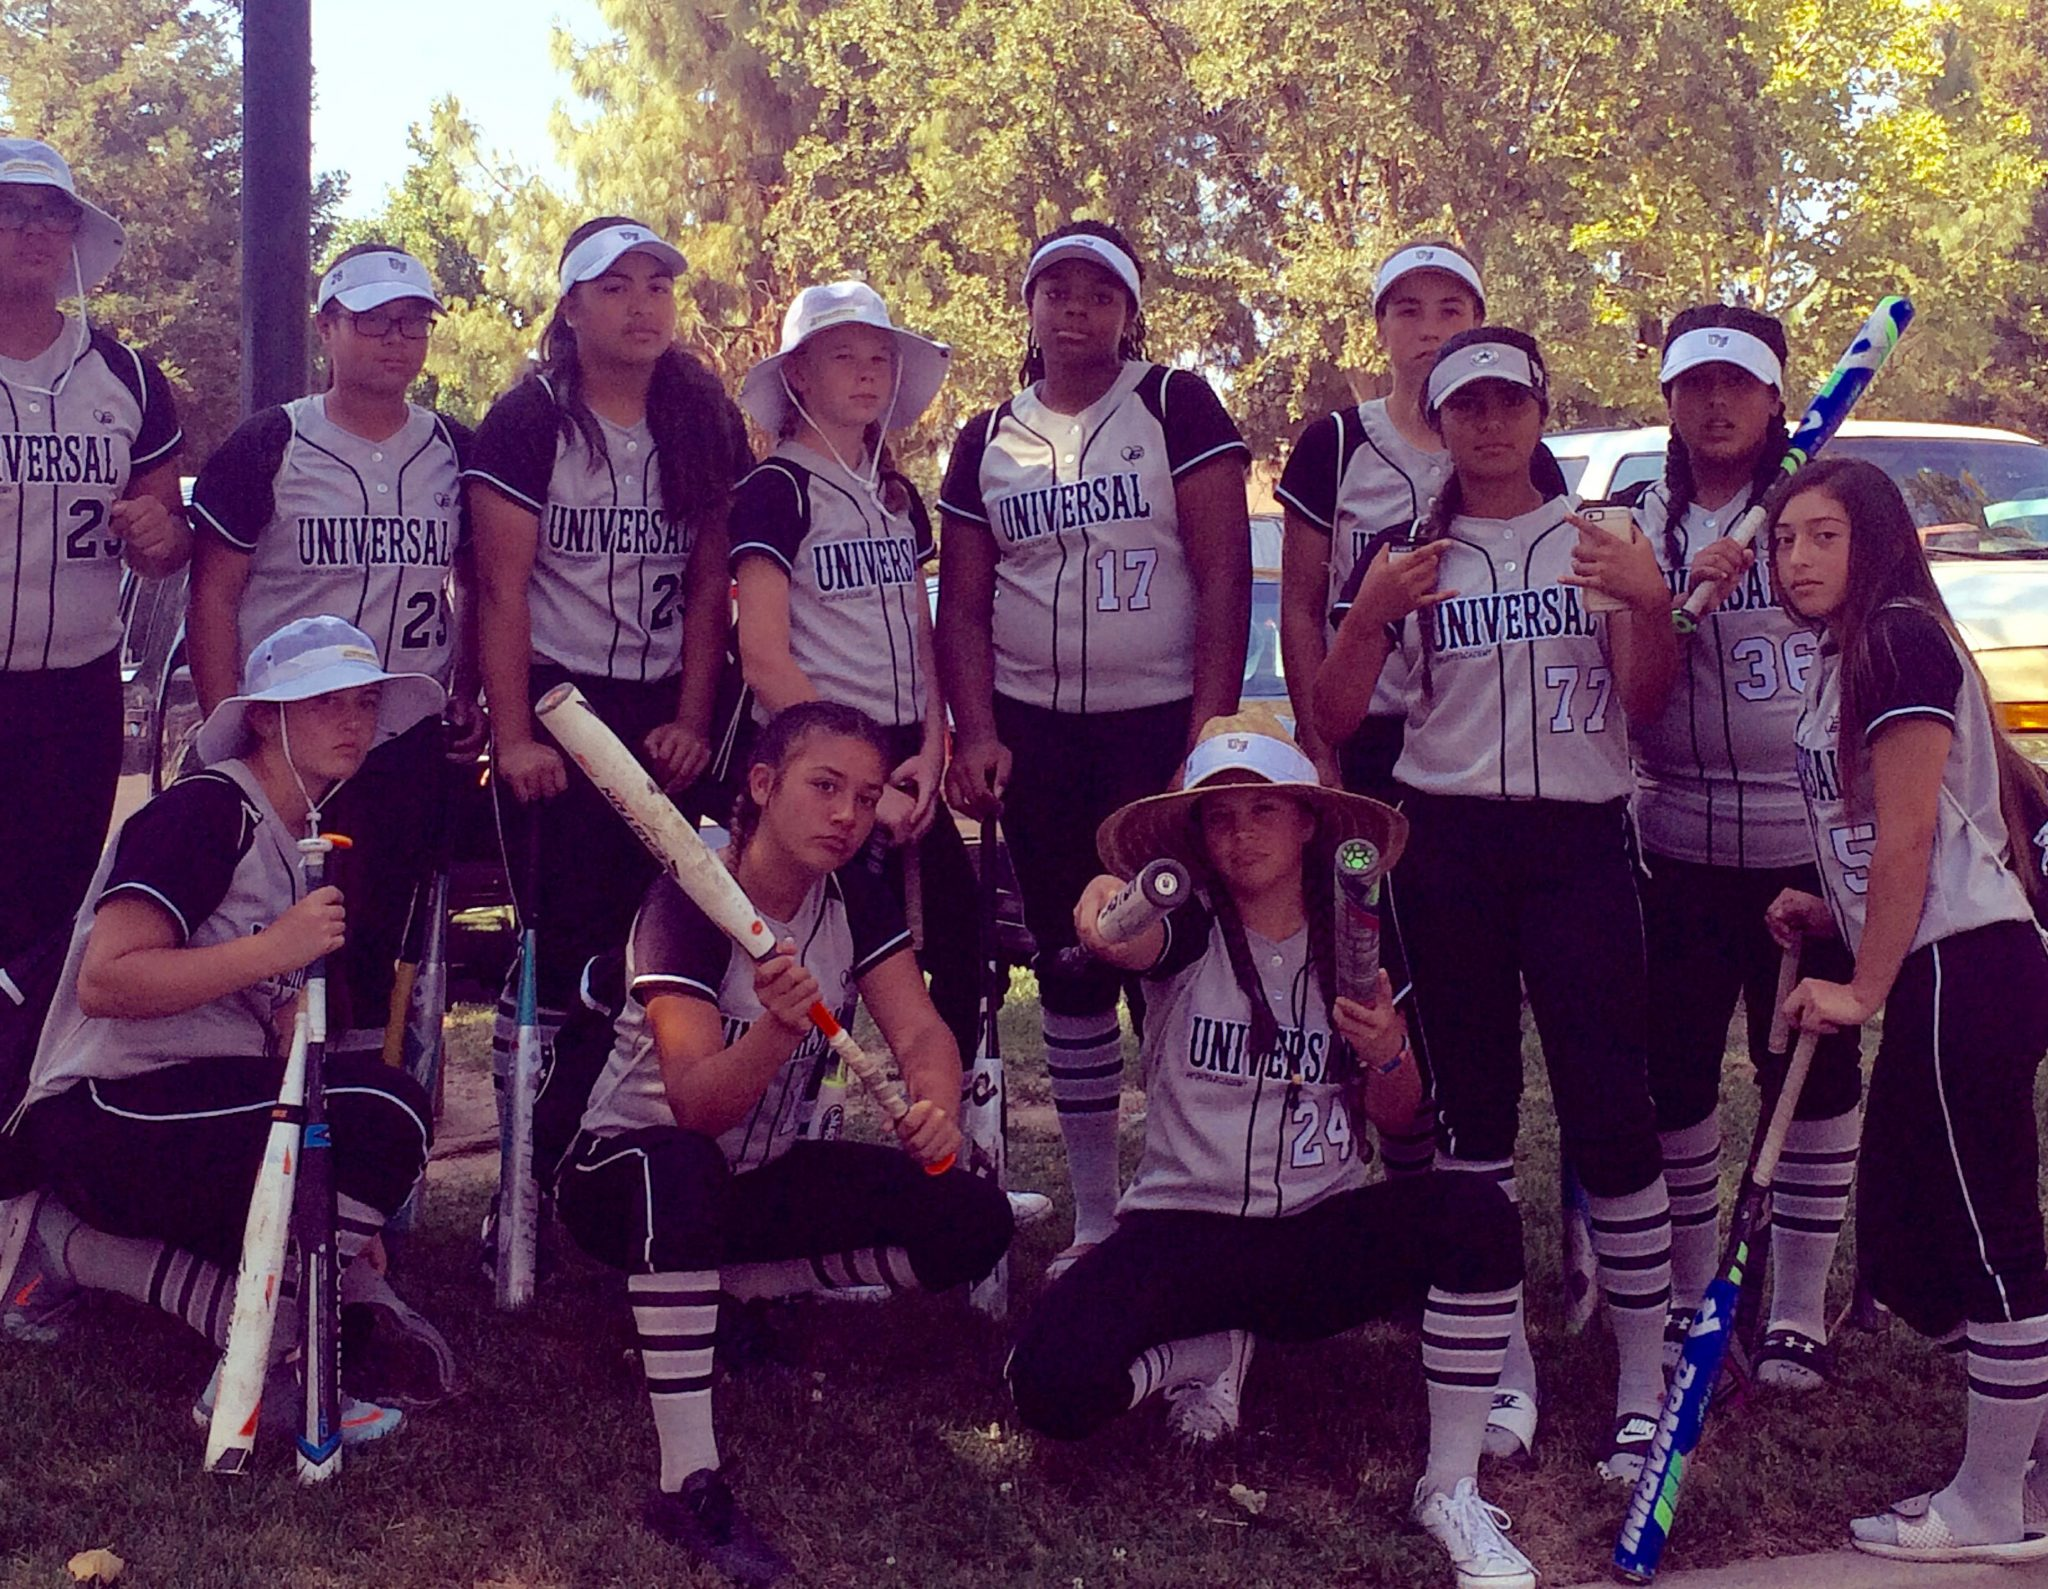 The Universal Sports Academy 14 & and under Fastpitch team traveled to Roseville this week to play for the Class A Western National Championship in Roseville, California. Playing for the Universal Sports Academy team are Tianna Bell, Jordan Blackmon, Madelyn Chambers, Shannon Kelly, Iabella Mendoza, Kira Nilson, Ashley Pye, Bailey Sample, Izabela Sanchez-Rodriguez, Karen Sepulvedo, Adriana Vasquez, Cierra Yeagar, Grace Own, Kaleena Yra and Charity Dumpit. (COURTESY / On File)